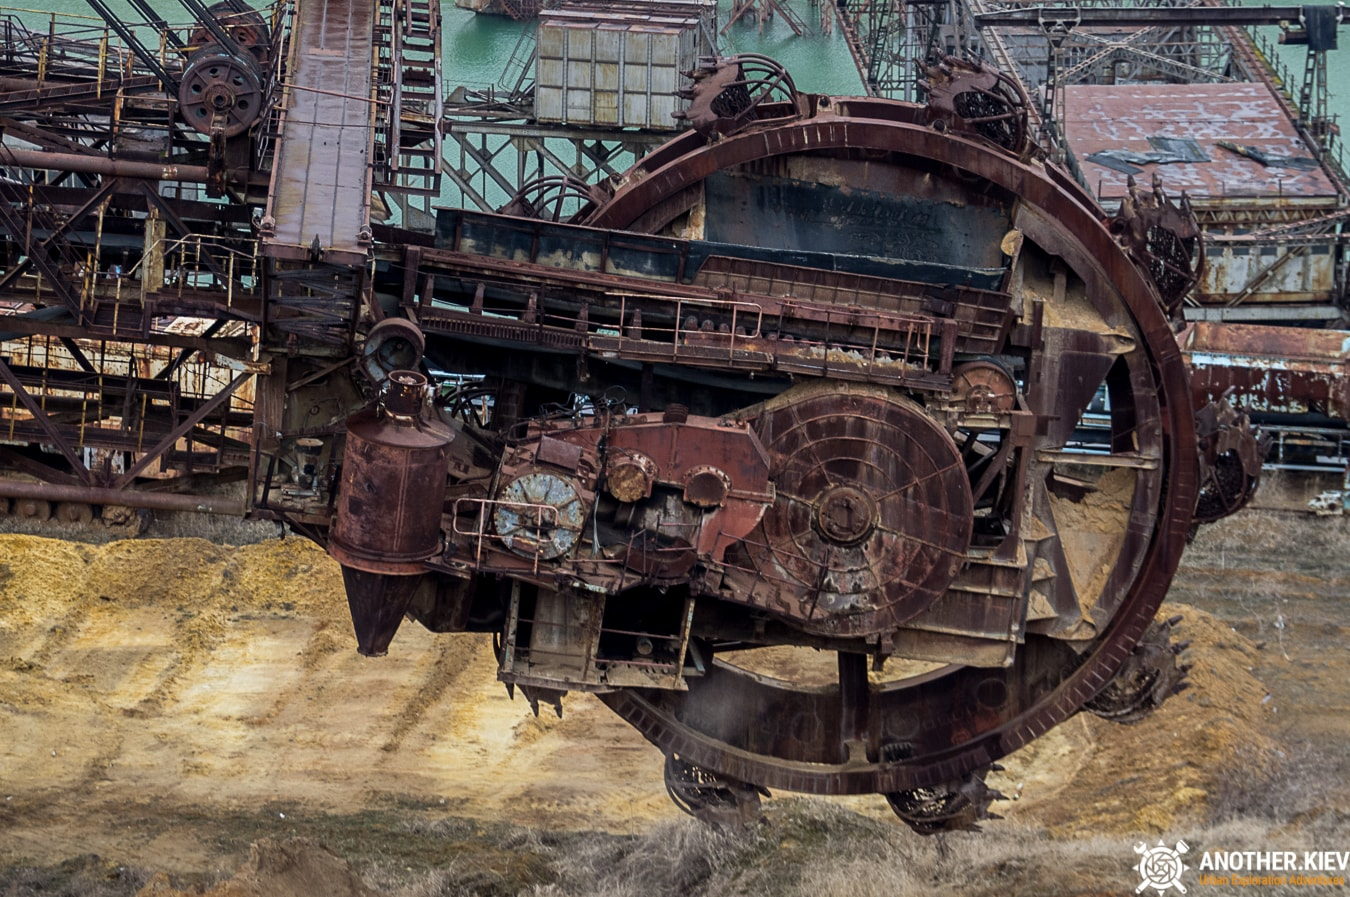 drum rotor of an abandoned excavator